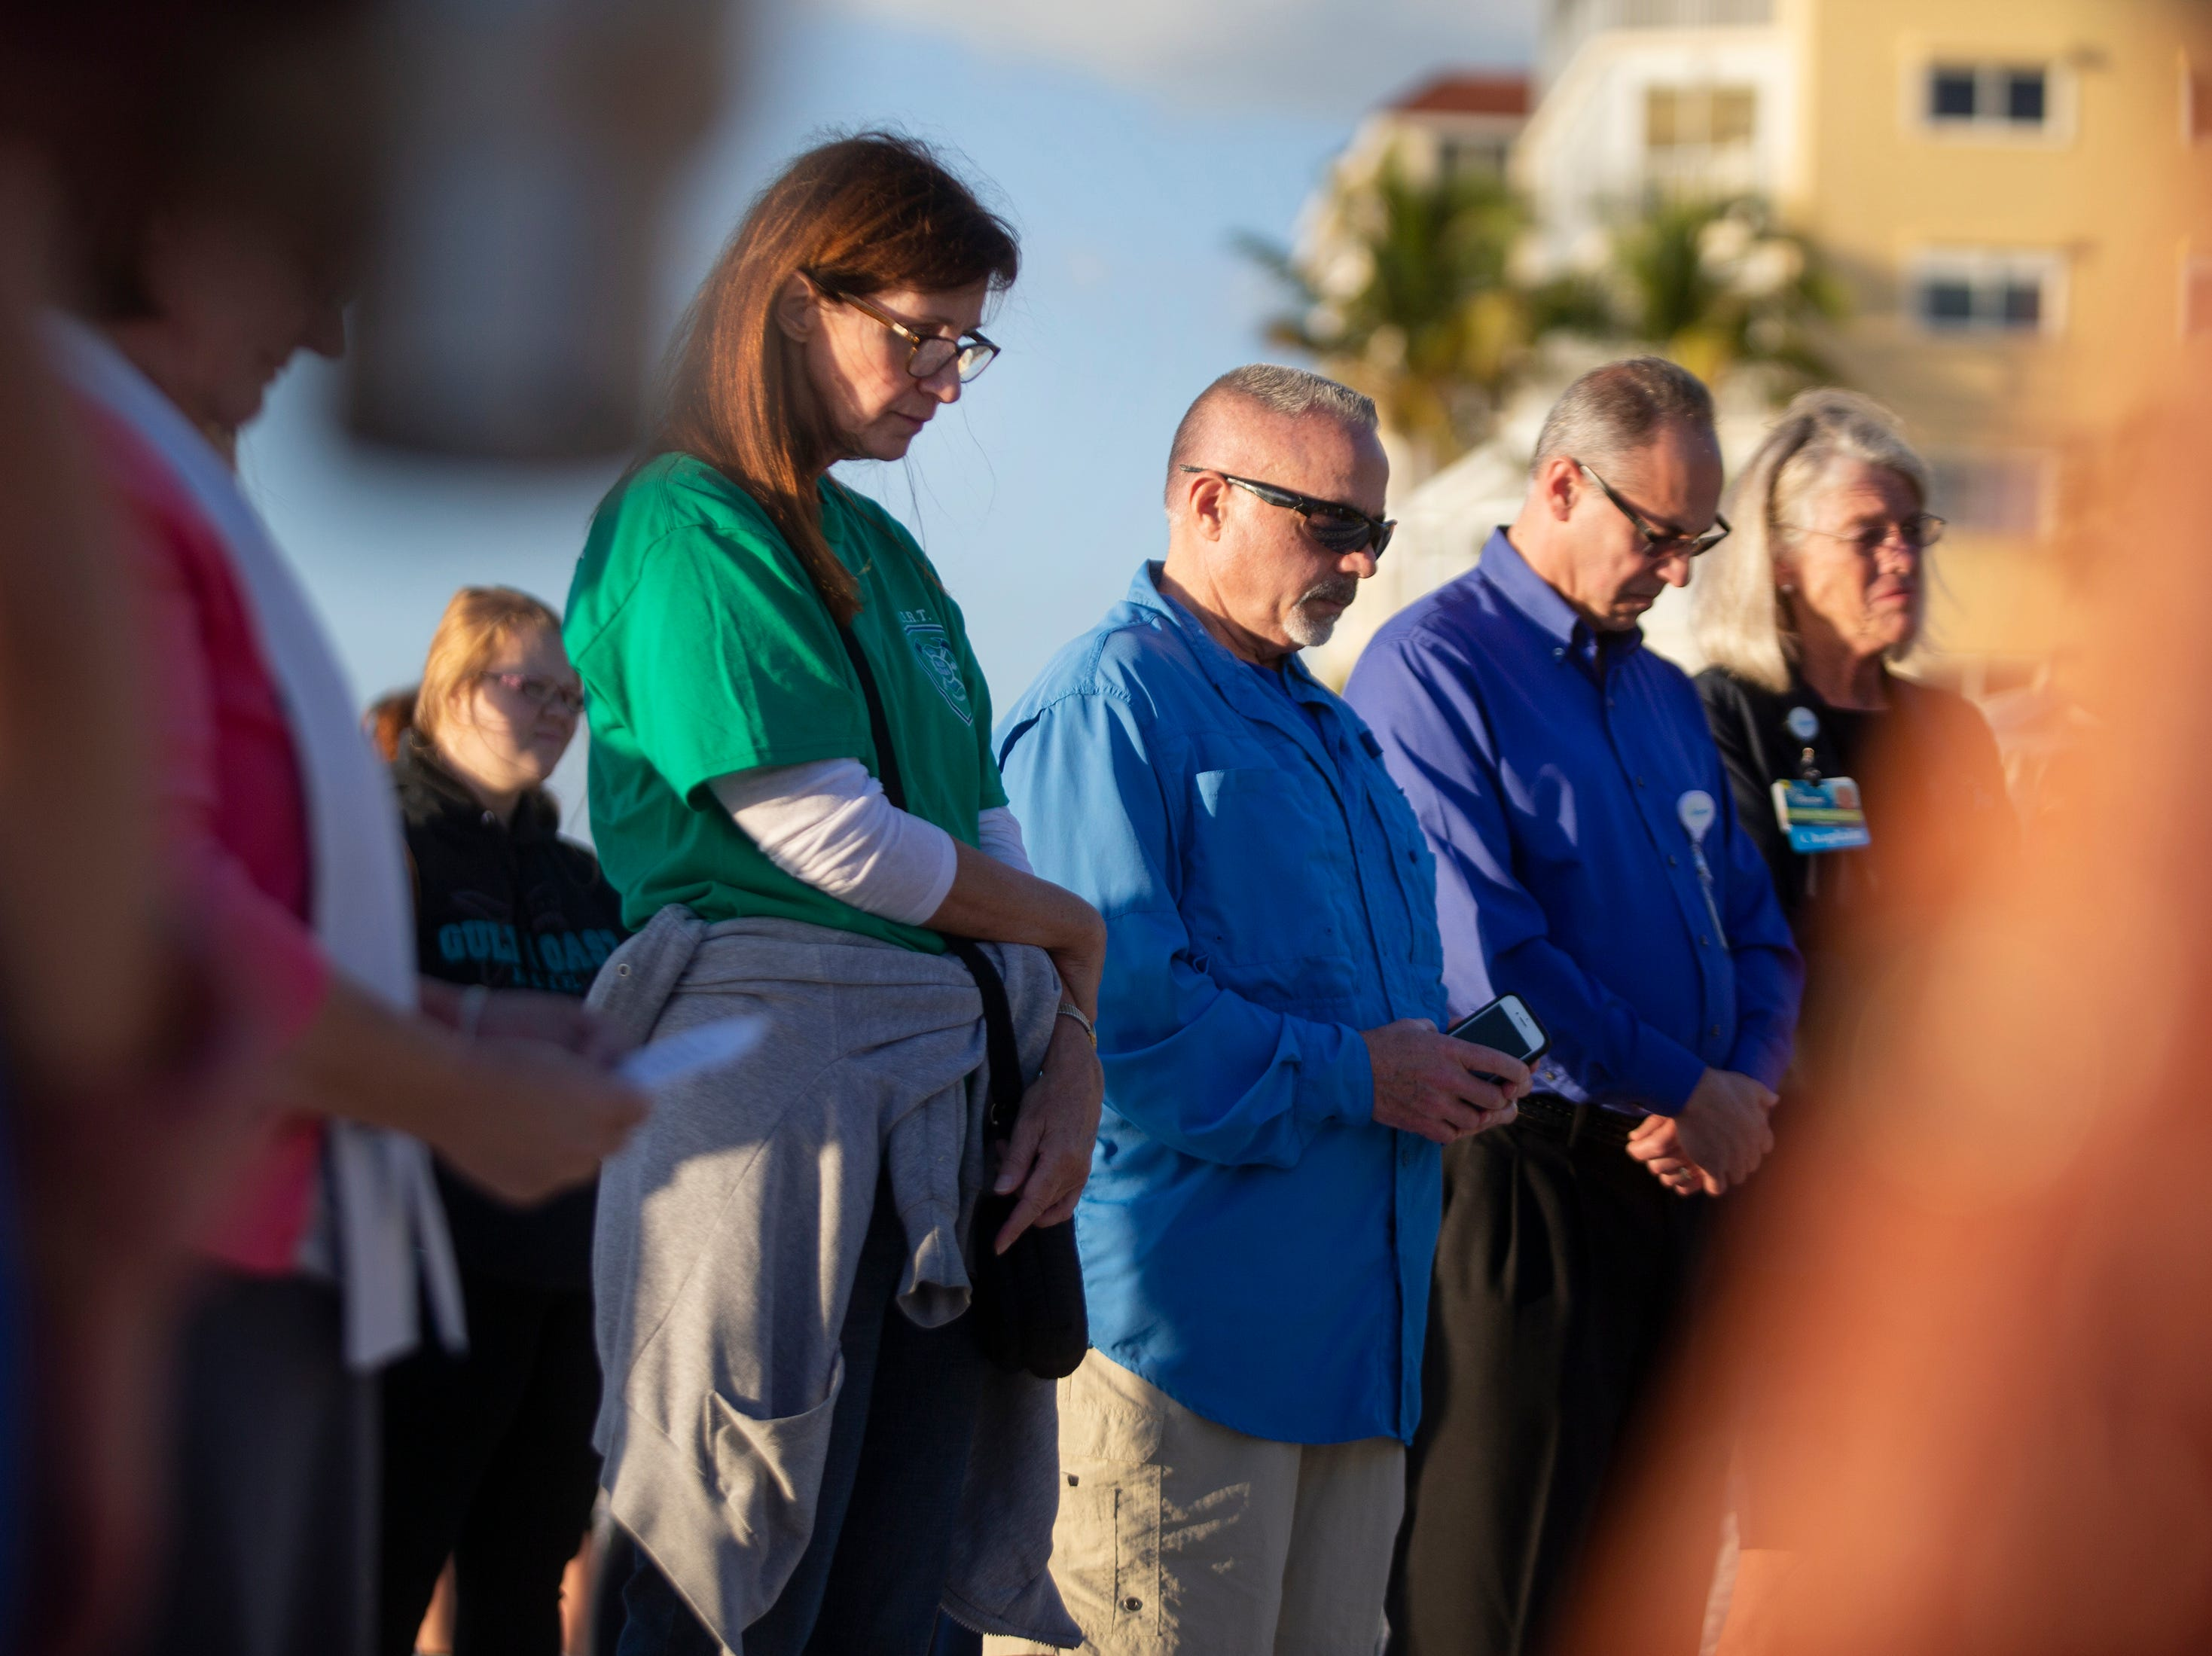 Community members observe a moment of silence to honor local children who have died in a drowning accident during a the 6th Annual Twin Tot Walk Vigil, Friday, Jan. 11, 2019 at Vanderbilt Beach.